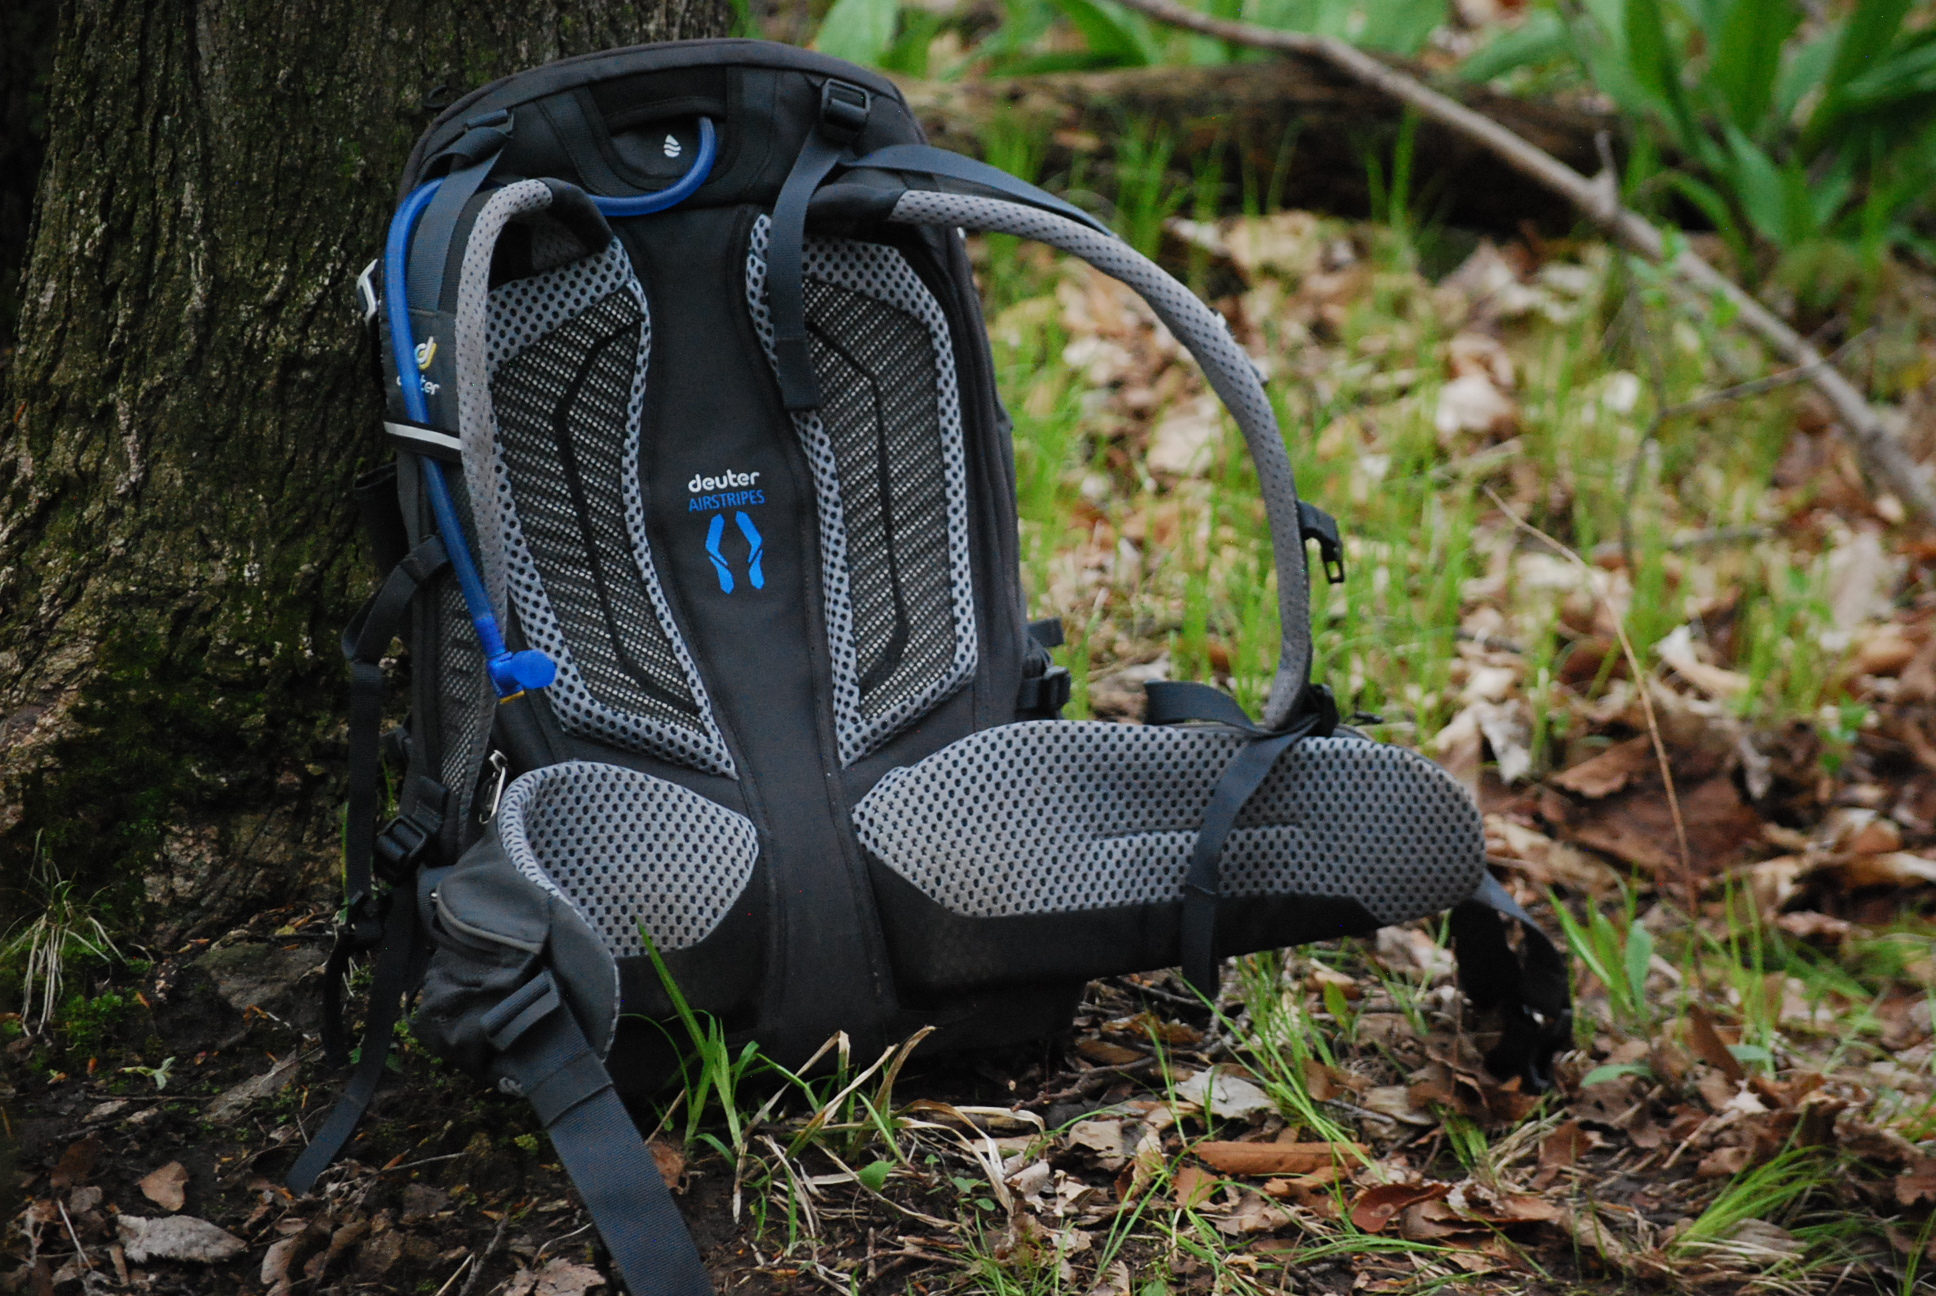 Review: The Deuter Trans Alpine Pro 28 Provides Comfort and Capacity for Epic Adventures - Singletracks Mountain Bike News